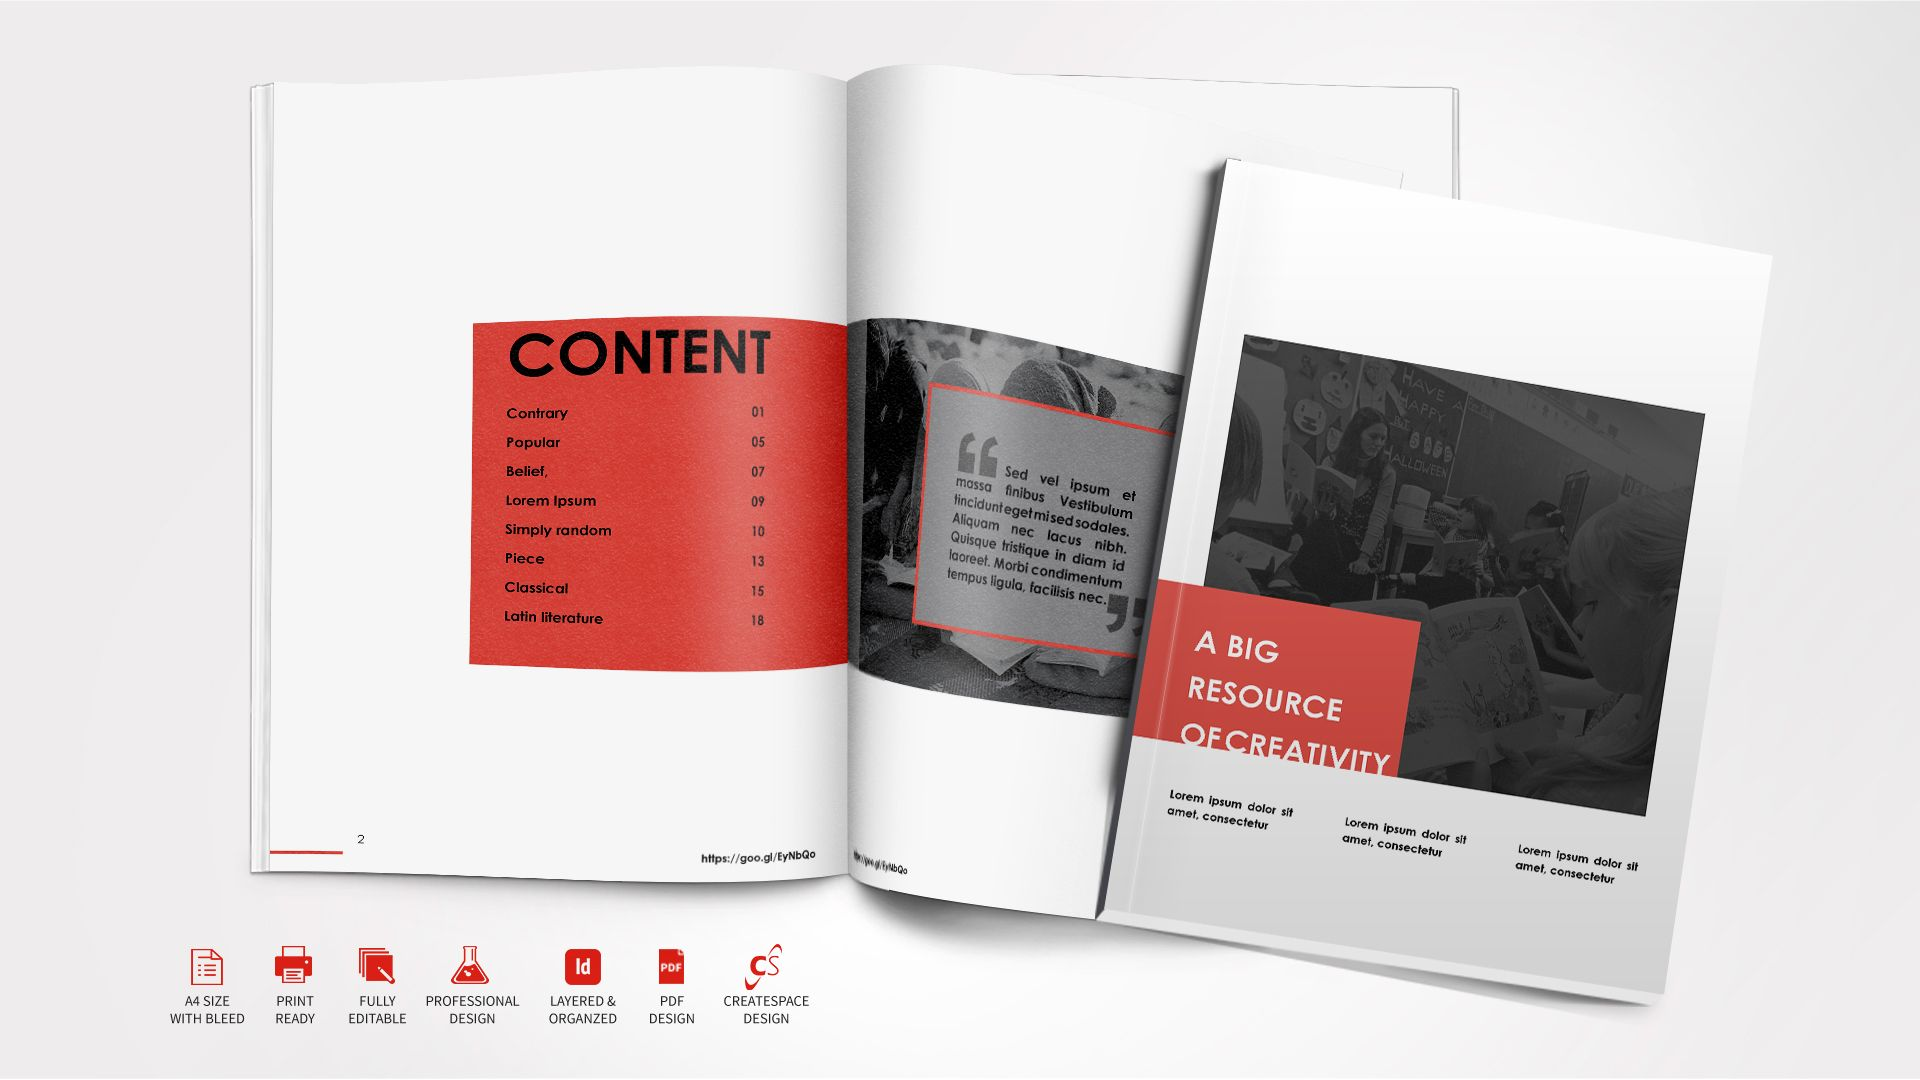 Great Ebook Design Best Ebook Design Examples Head First Design Patterns Pdf Free Download Ebook Fre Book Design Layout Typography Book Book Cover Design